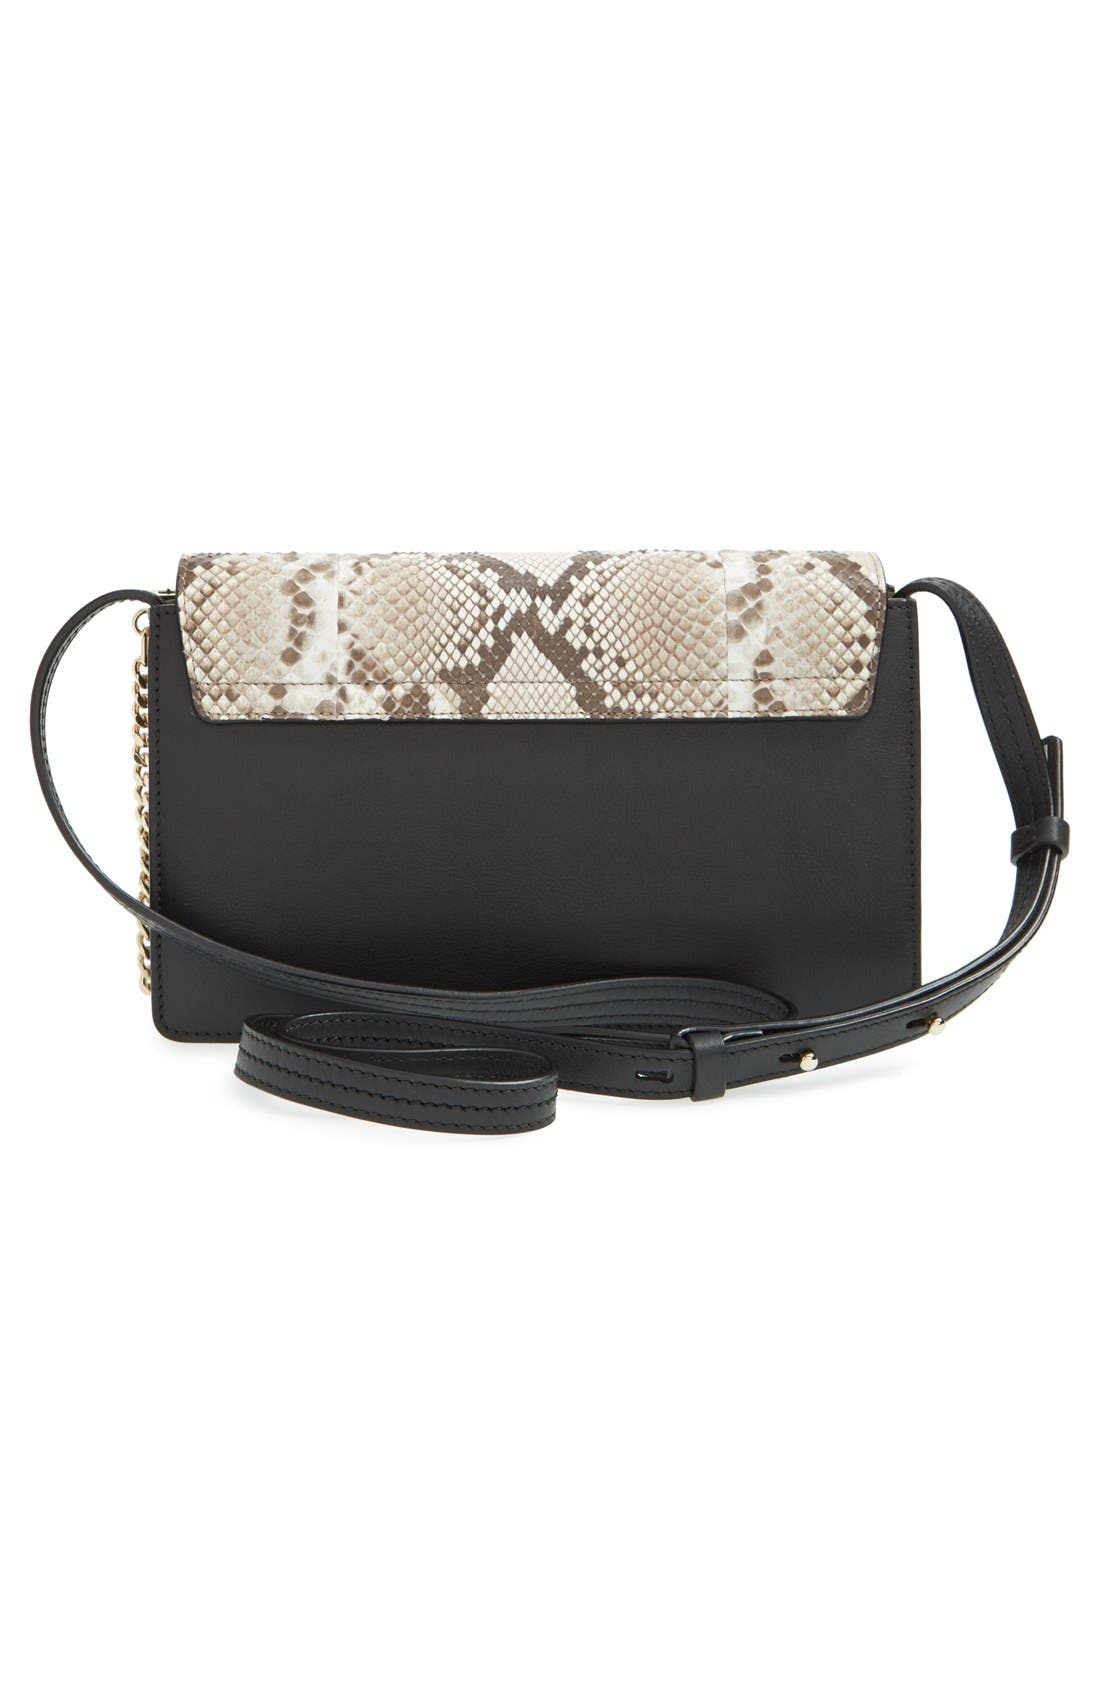 Alternate Image 3  - Chloé 'Small Faye' Genuine Python & Leather Shoulder Bag